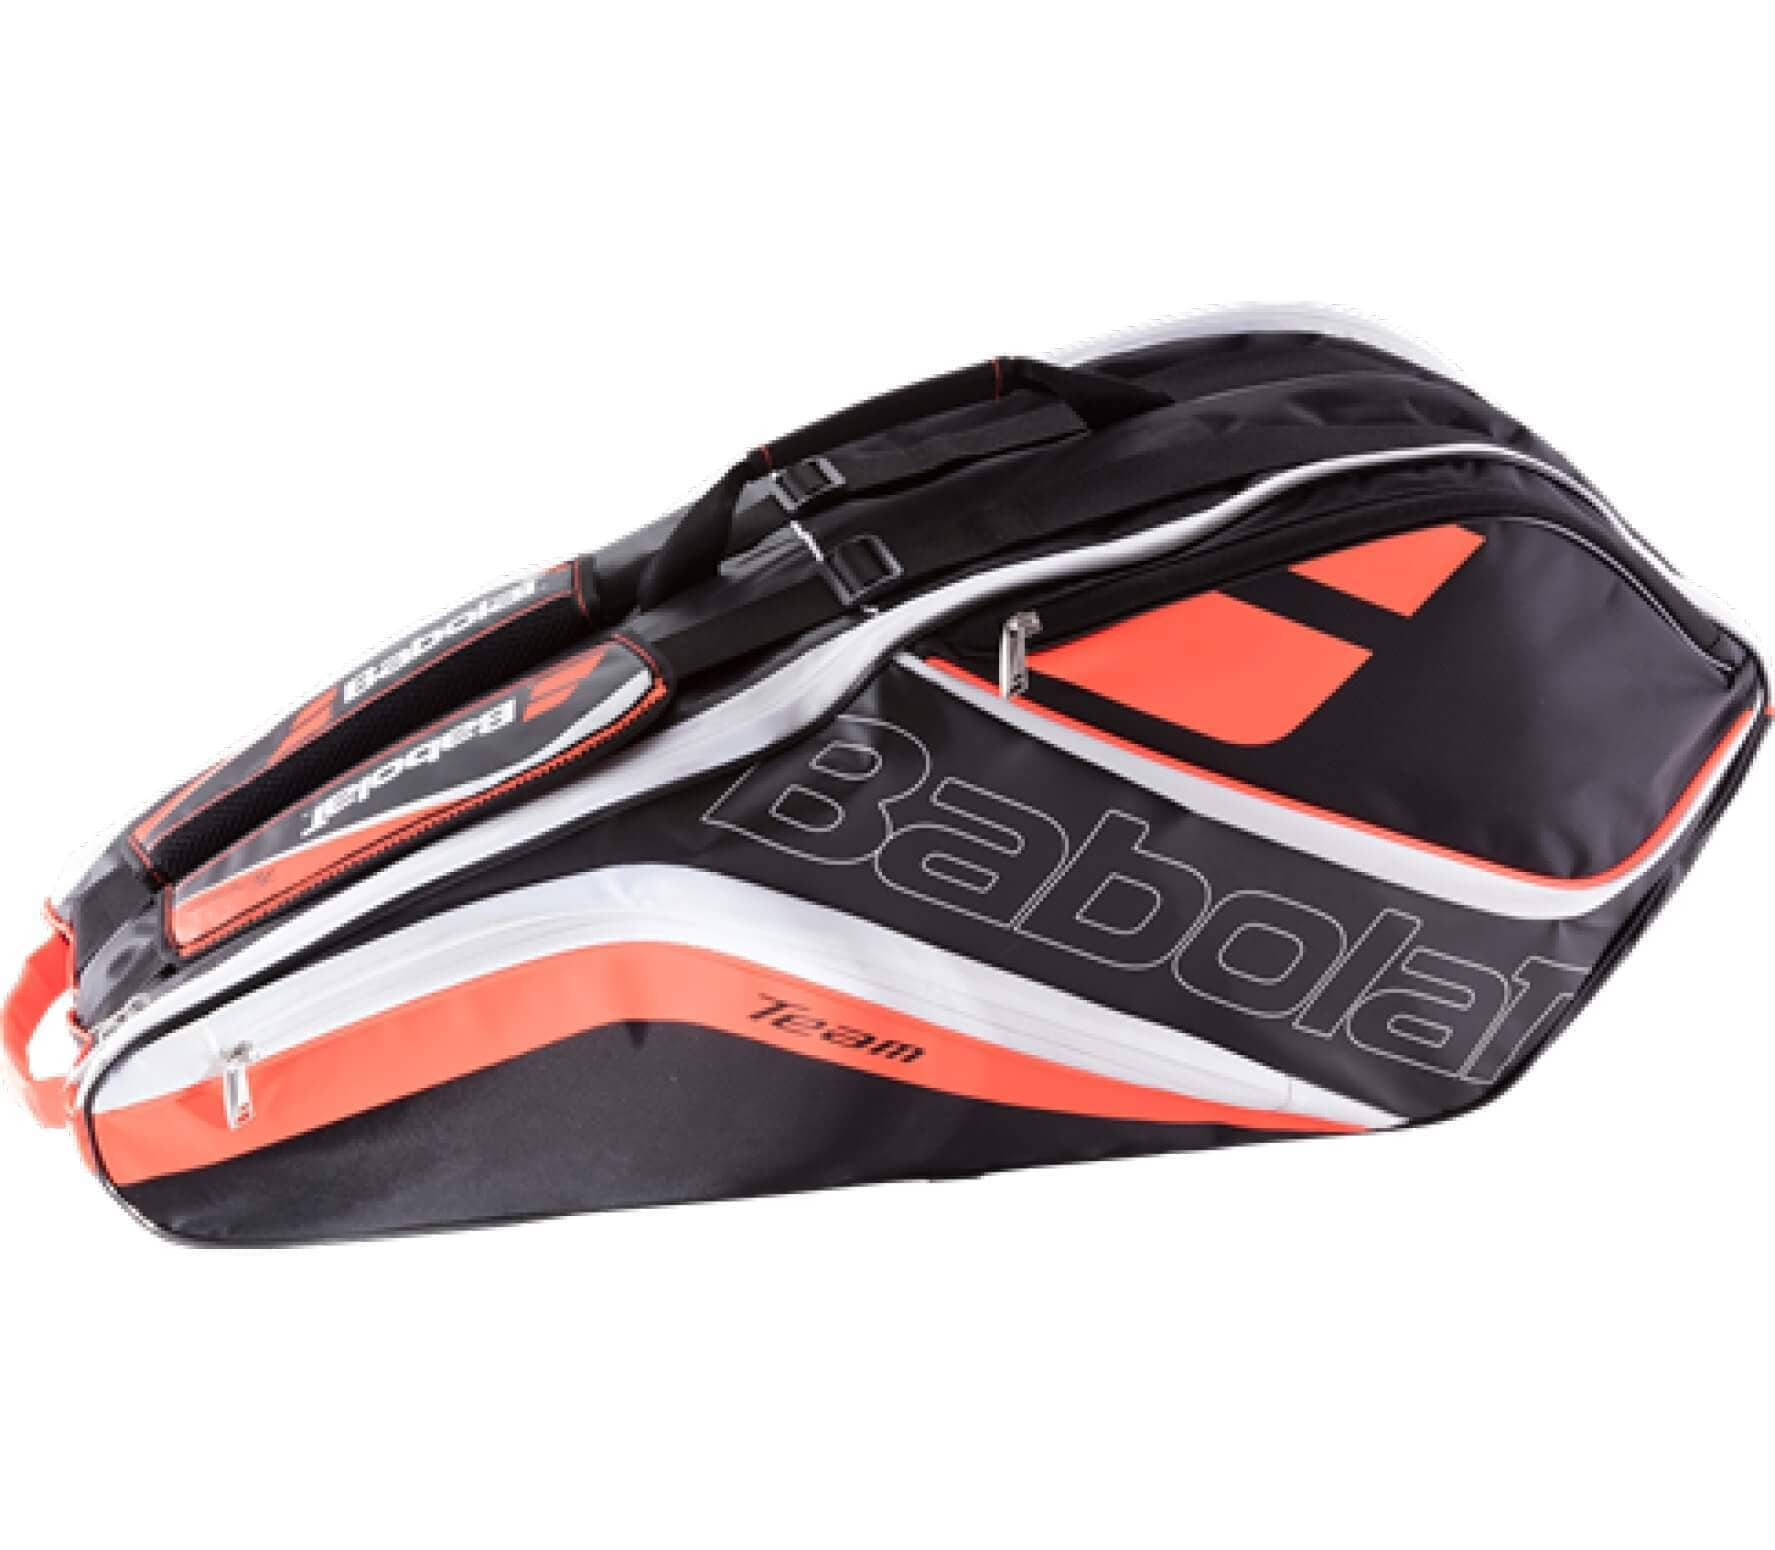 Babolat - Game Racket Holder X6 Tennistasche (schwarz/orange)